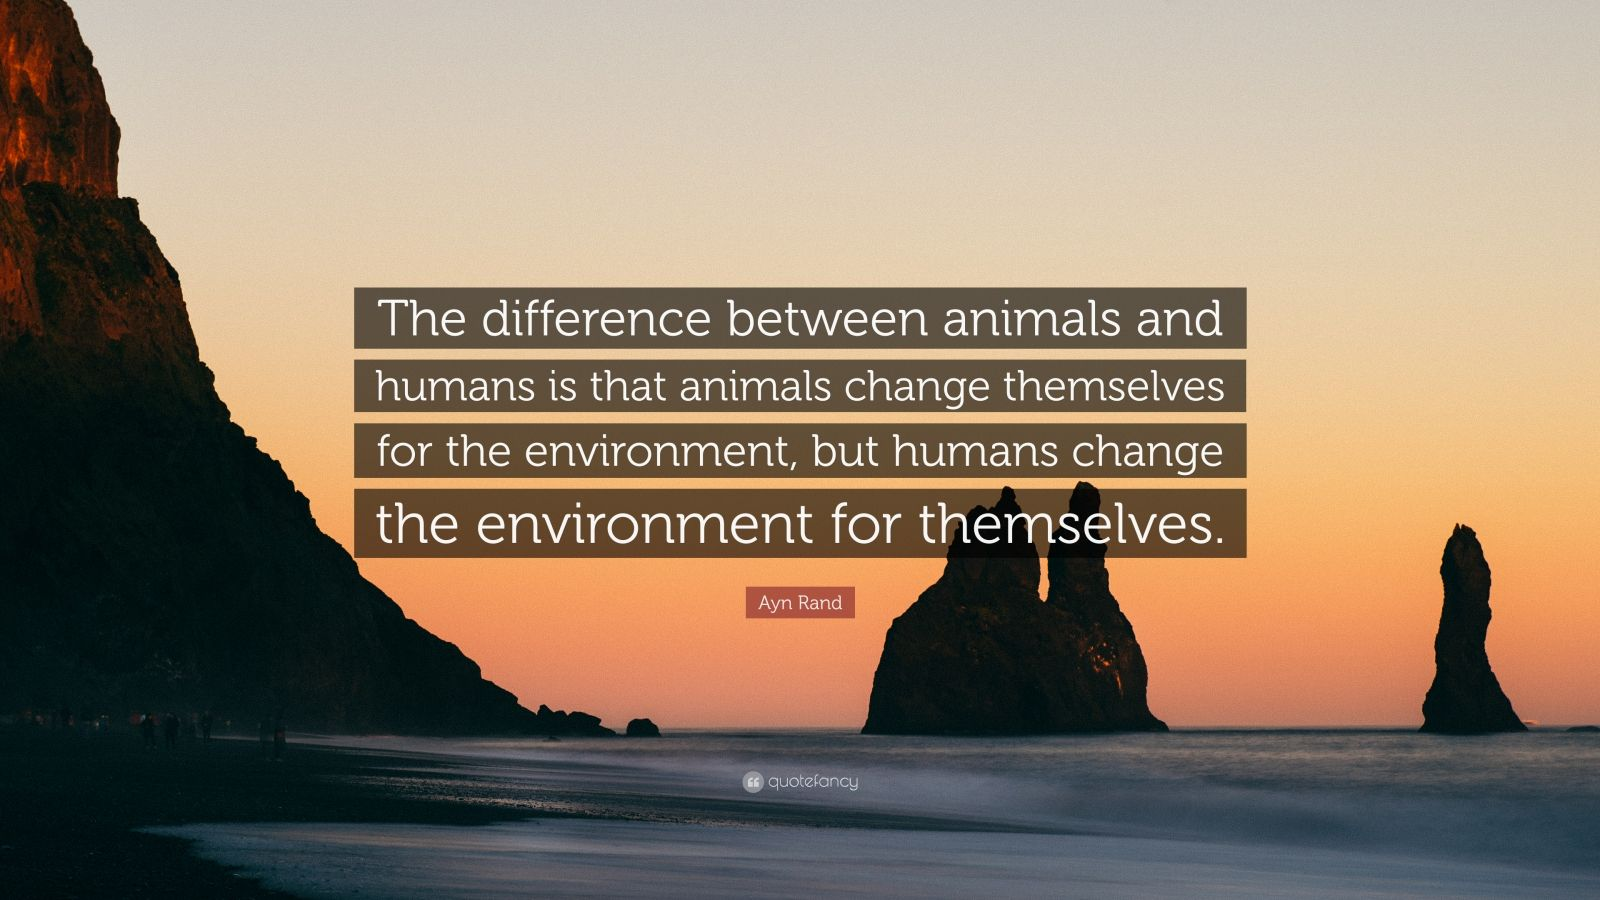 humans and animals difference